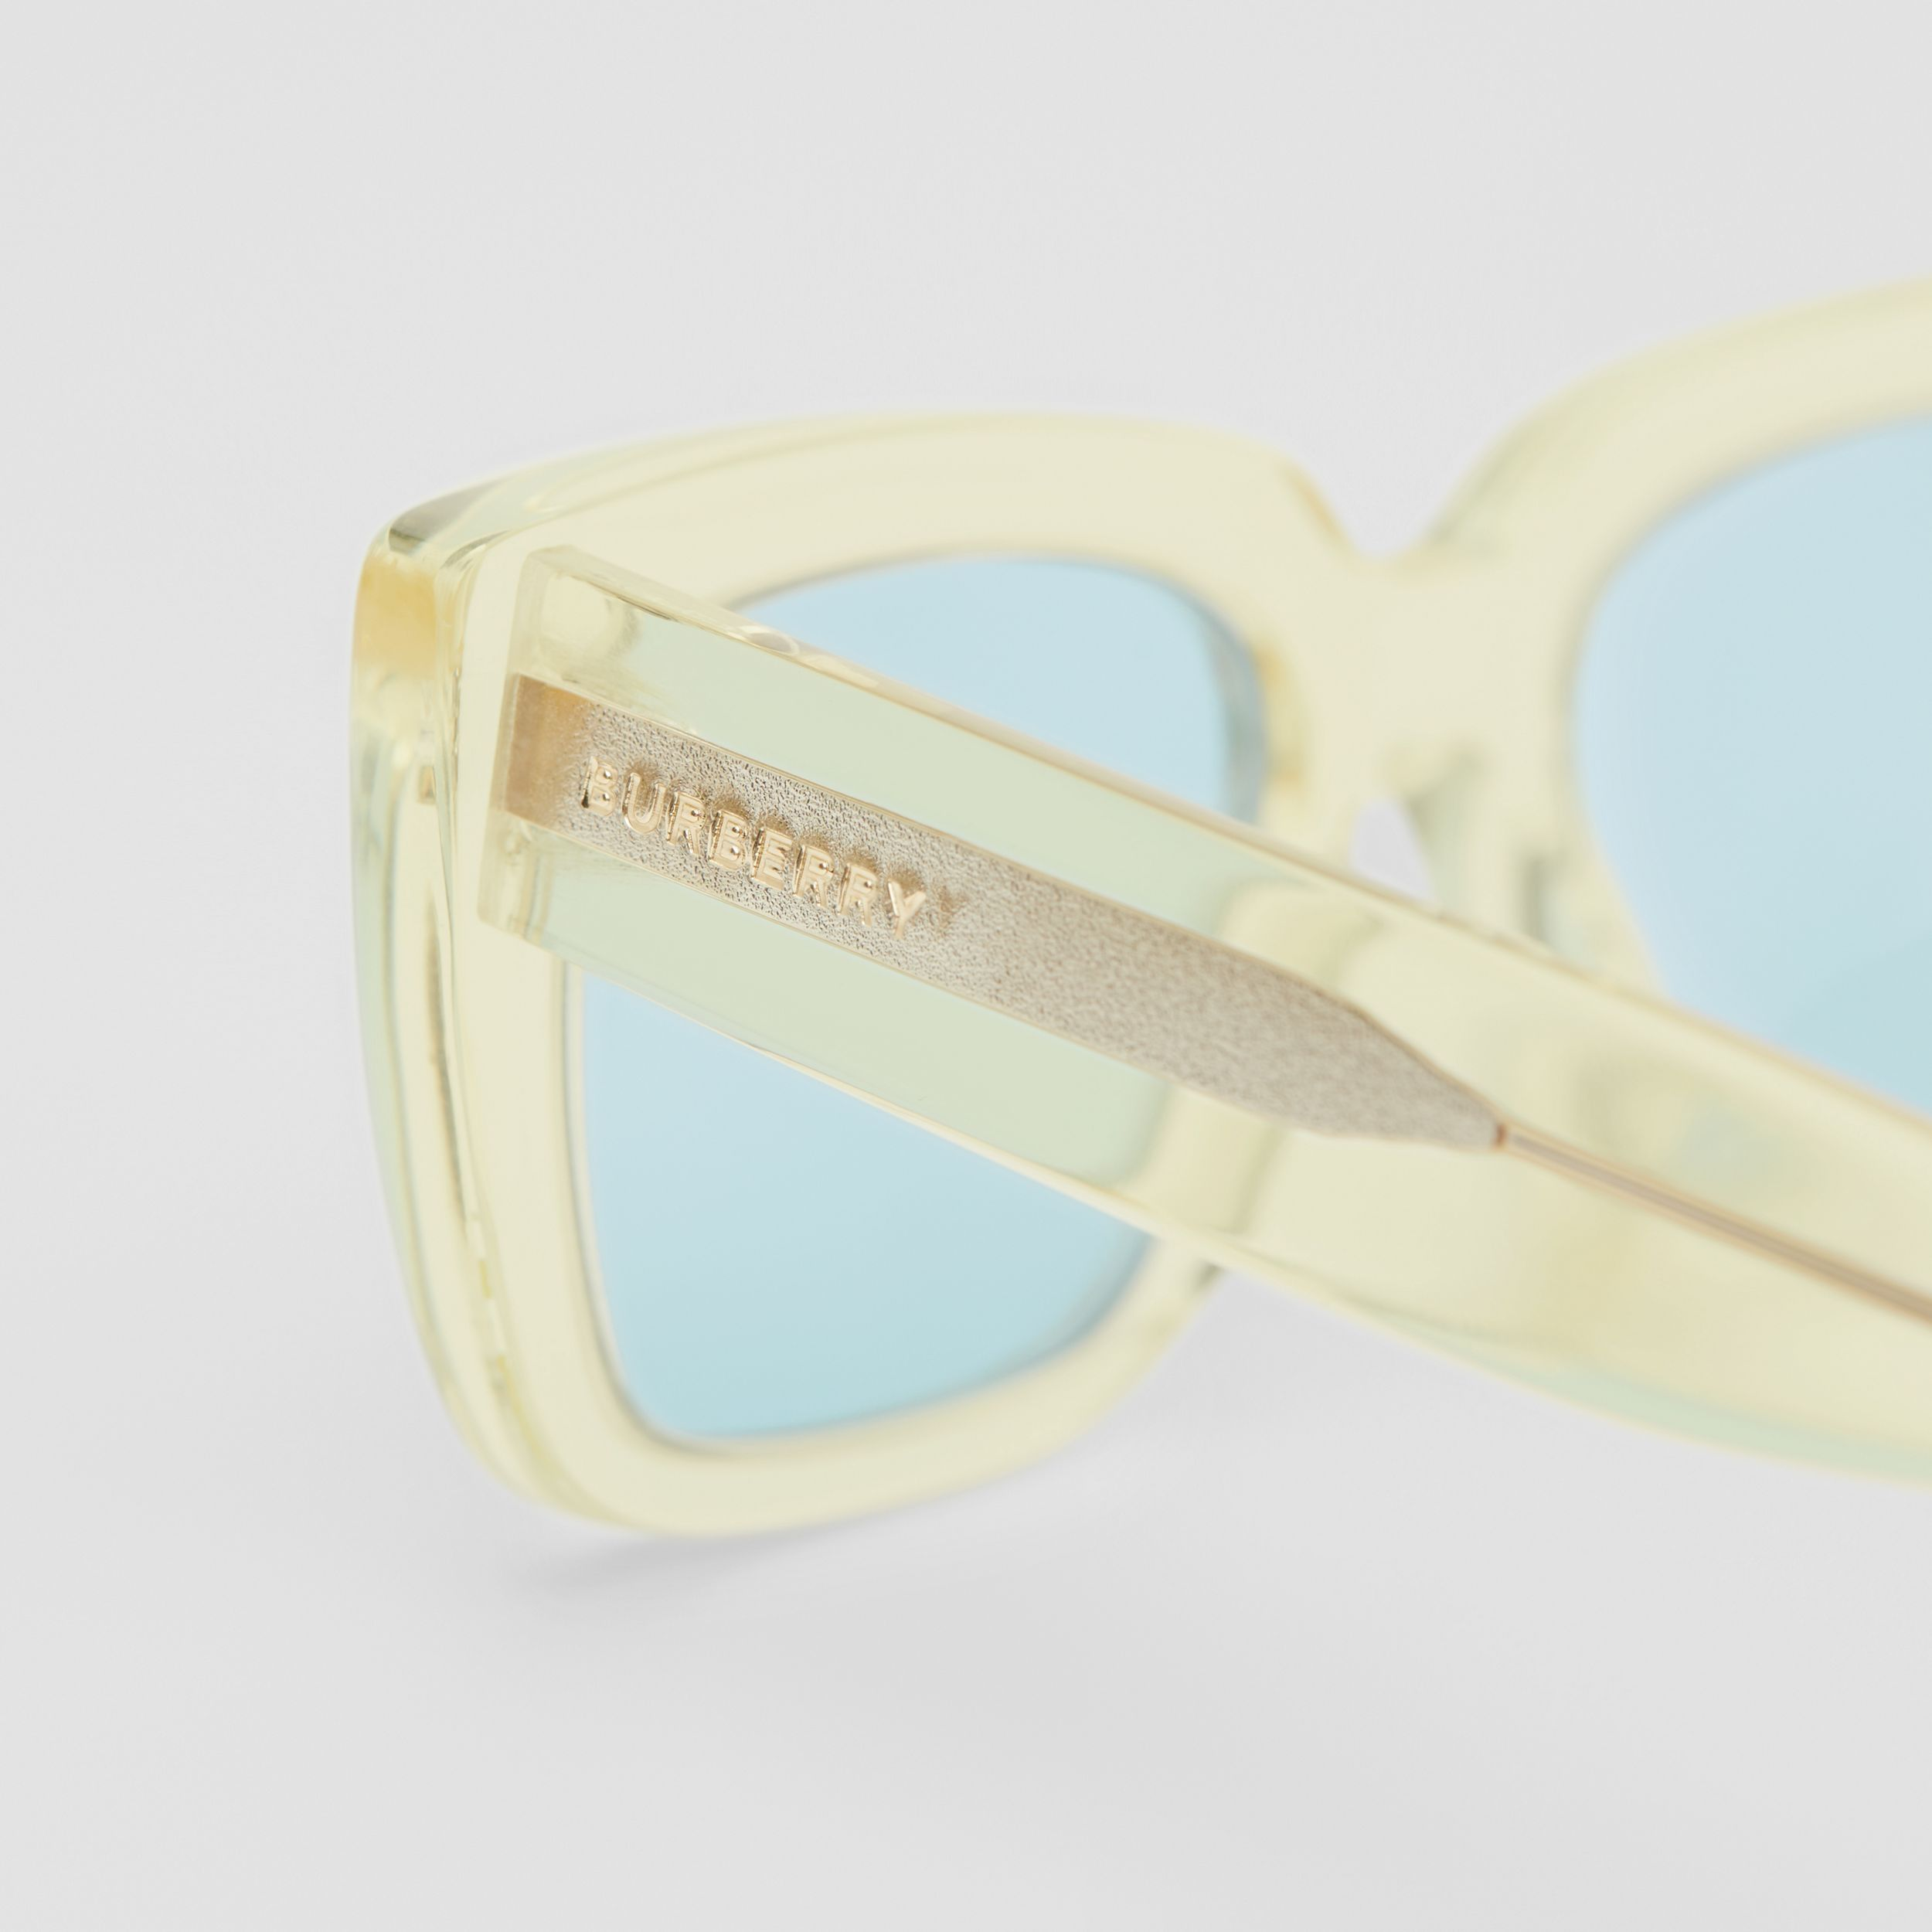 Bio-acetate Rectangular Frame Sunglasses in Pale Yellow - Women | Burberry - 2